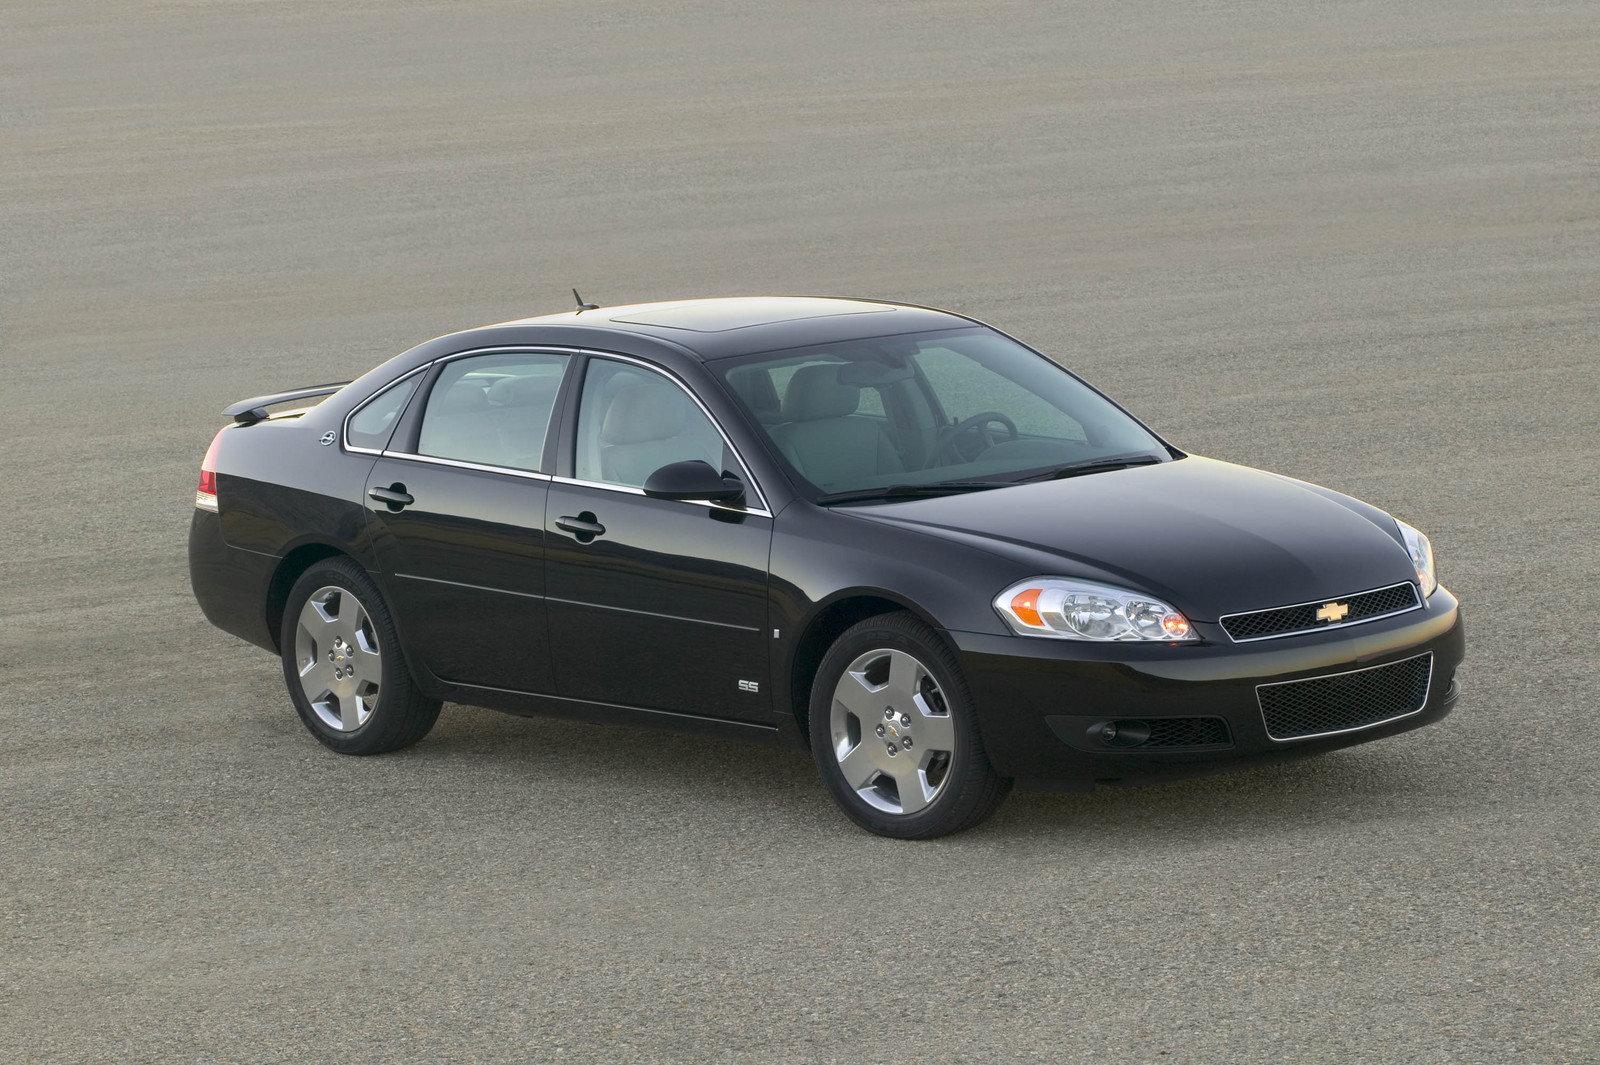 2007 chevrolet impala ltz picture 90292 car review top speed. Black Bedroom Furniture Sets. Home Design Ideas